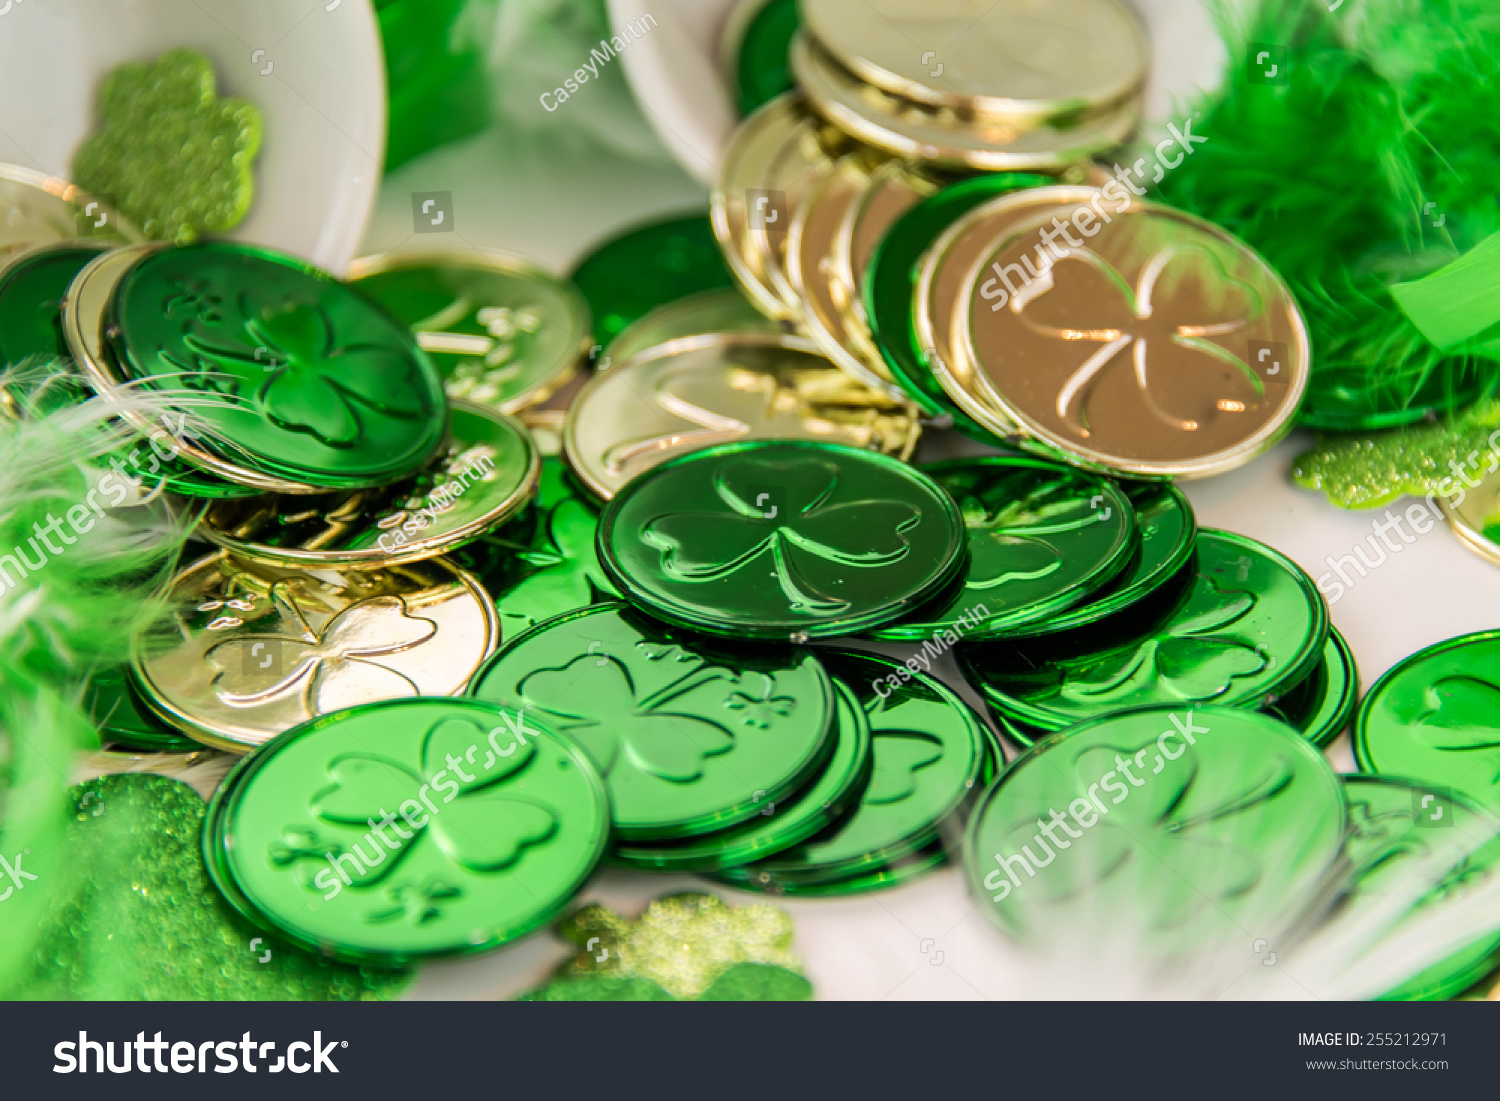 ideas st decor home s patricks pinterest made day modern decorations simple patrick